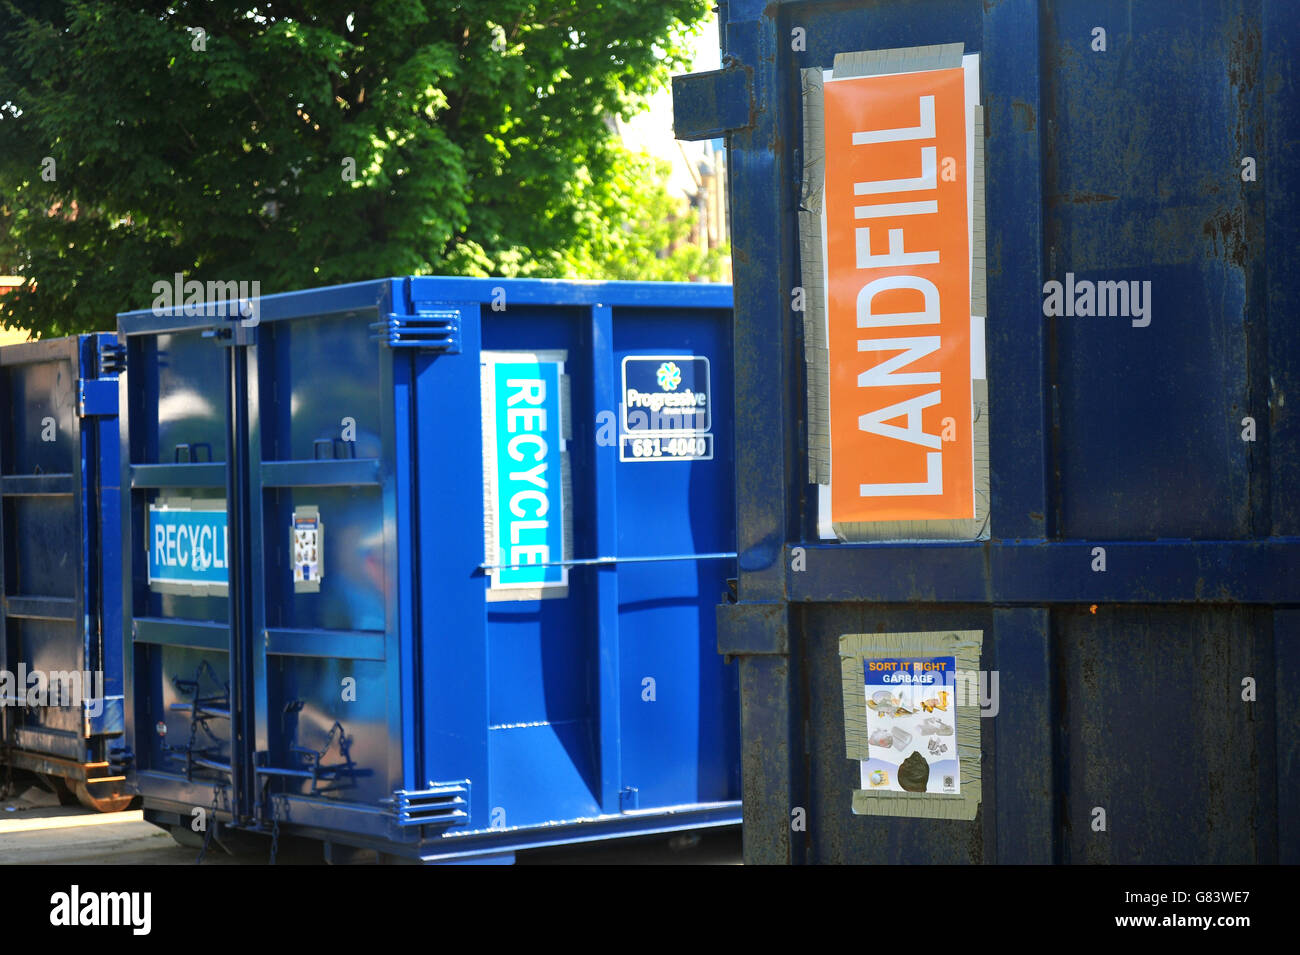 Large landfill and recycling containers placed at the side of a city festival in London Ontario. - Stock Image